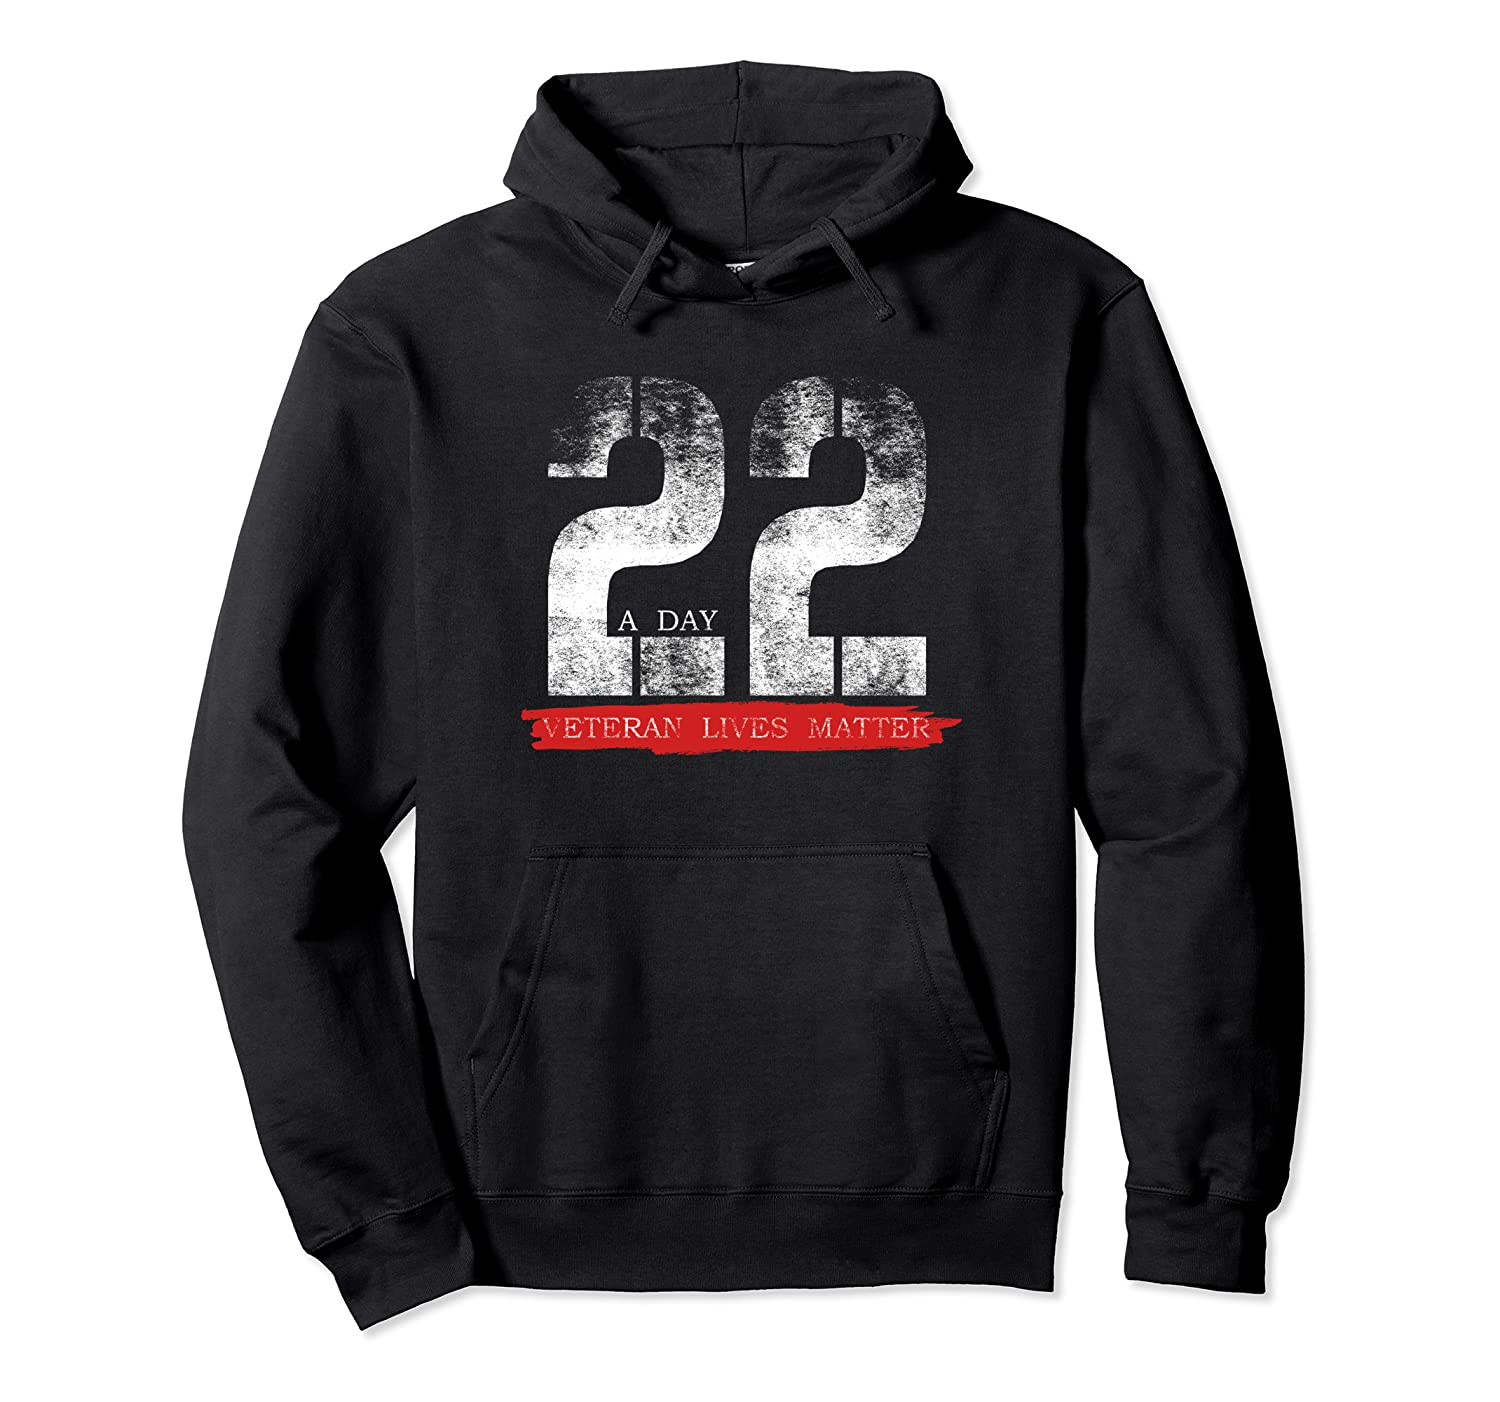 22 A Day Veteran Lives Matter Military Suicide Awareness T Shirt Unisex Pullover Hoodie